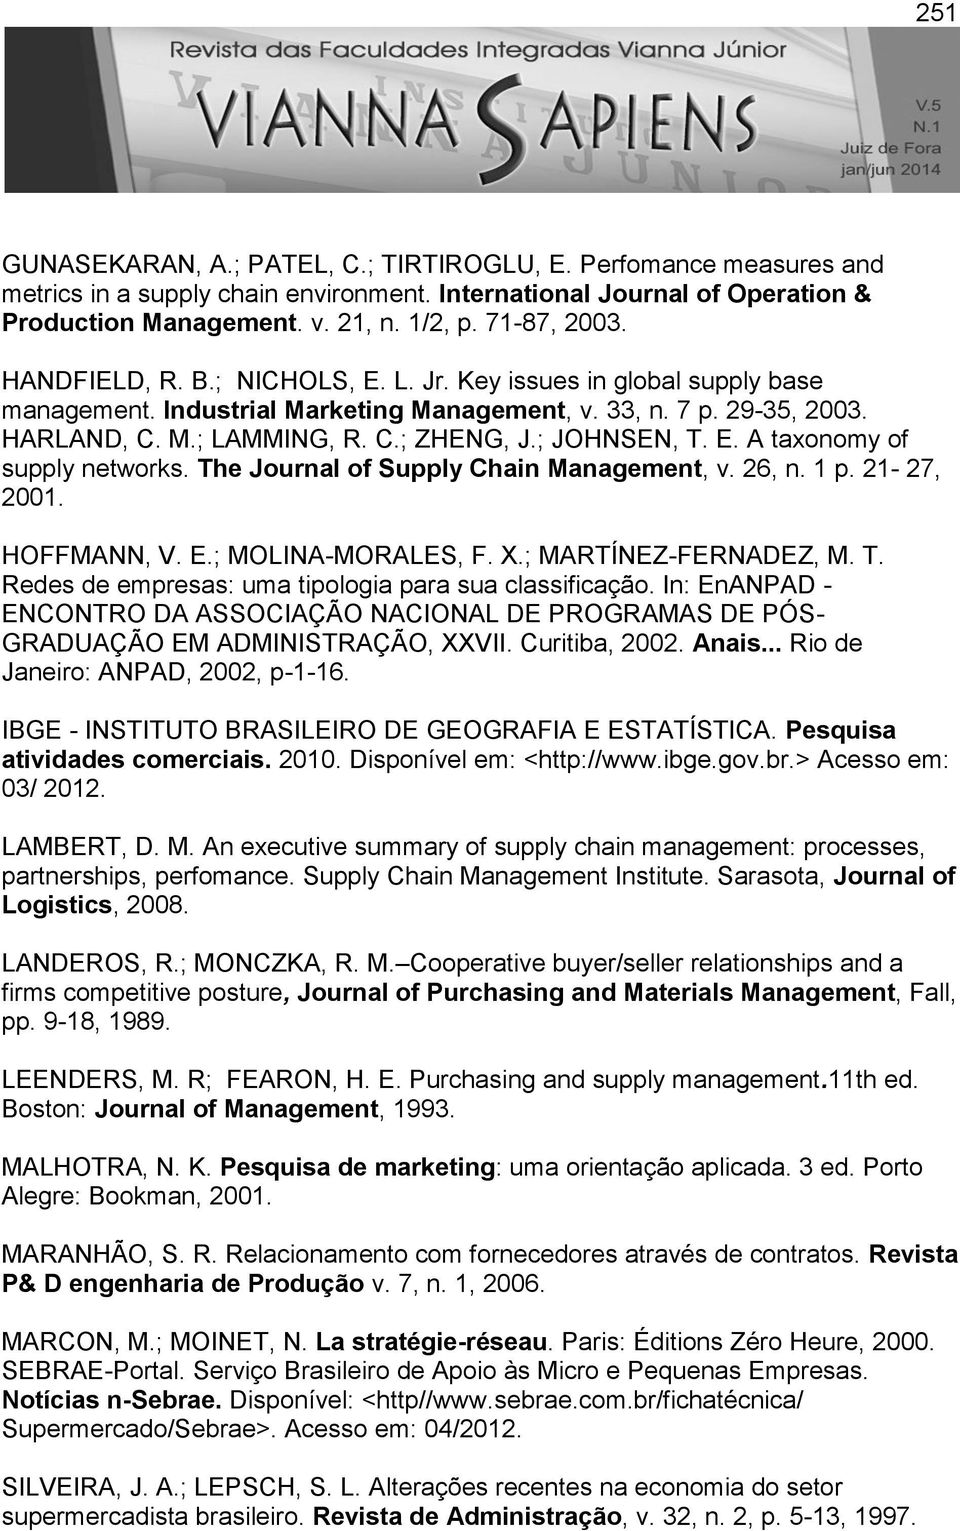 The Journal of Supply Chain Management, v. 26, n. 1 p. 21-27, 2001. HOFFMANN, V. E.; MOLINA-MORALES, F. X.; MARTÍNEZ-FERNADEZ, M. T. Redes de empresas: uma tipologia para sua classificação.